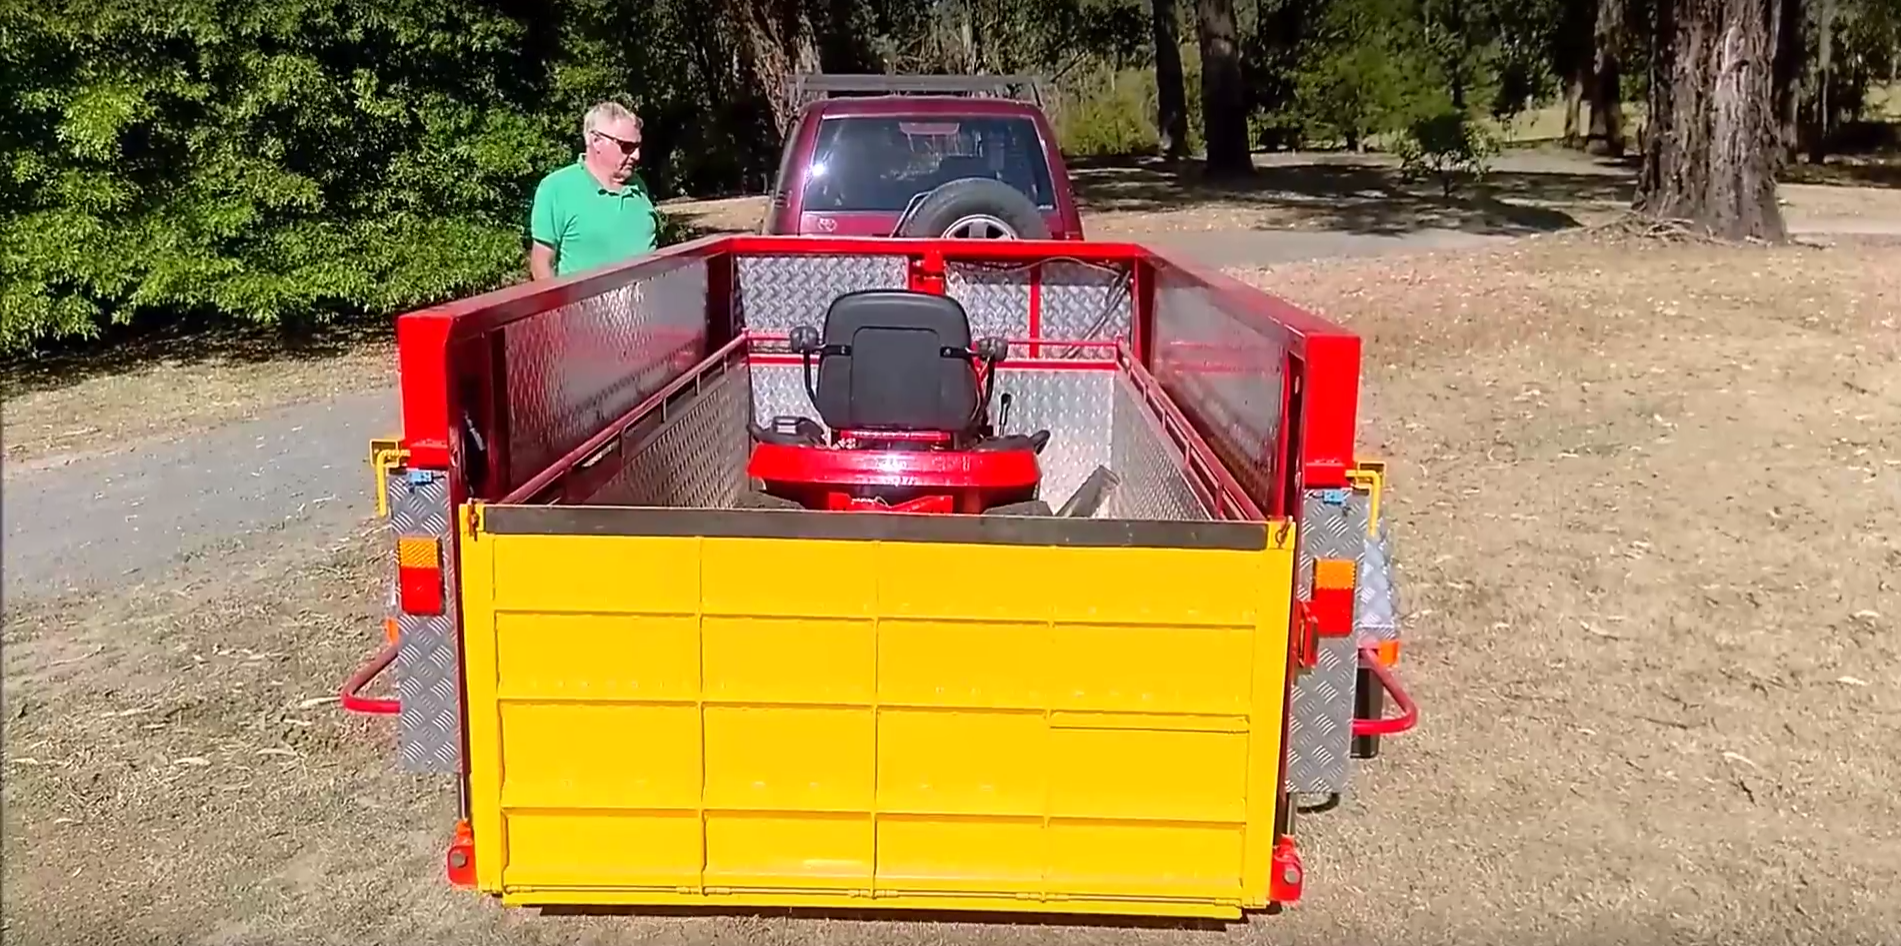 This Revolutionary Trailer System Has Got Everyone Excited. Here's Why.